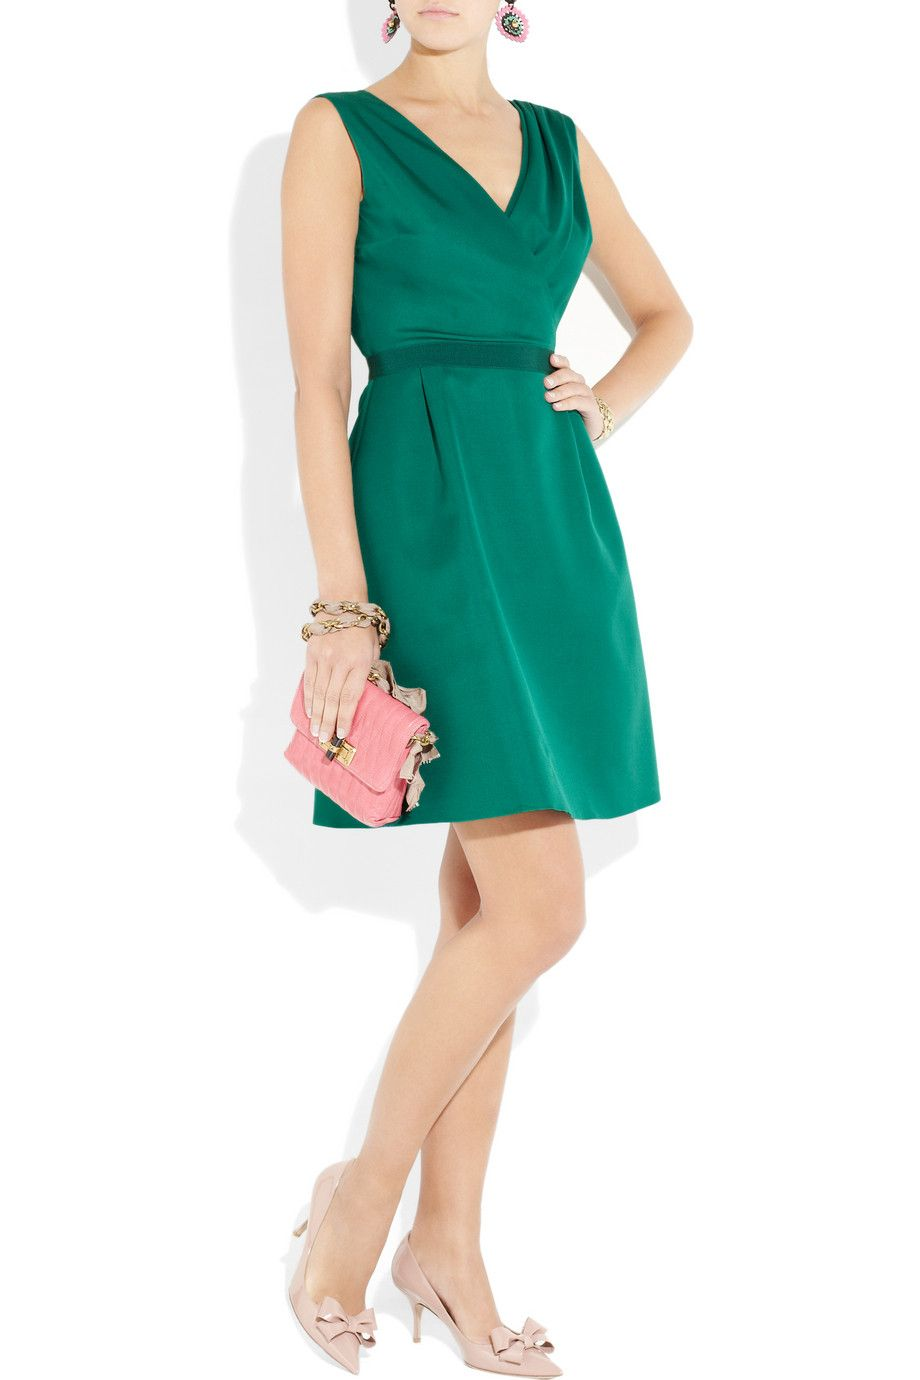 Giambattista Valli Teal Silk-Shantung Wrap-Effect Dress (Lanvin Bag, Valentino Shoes)